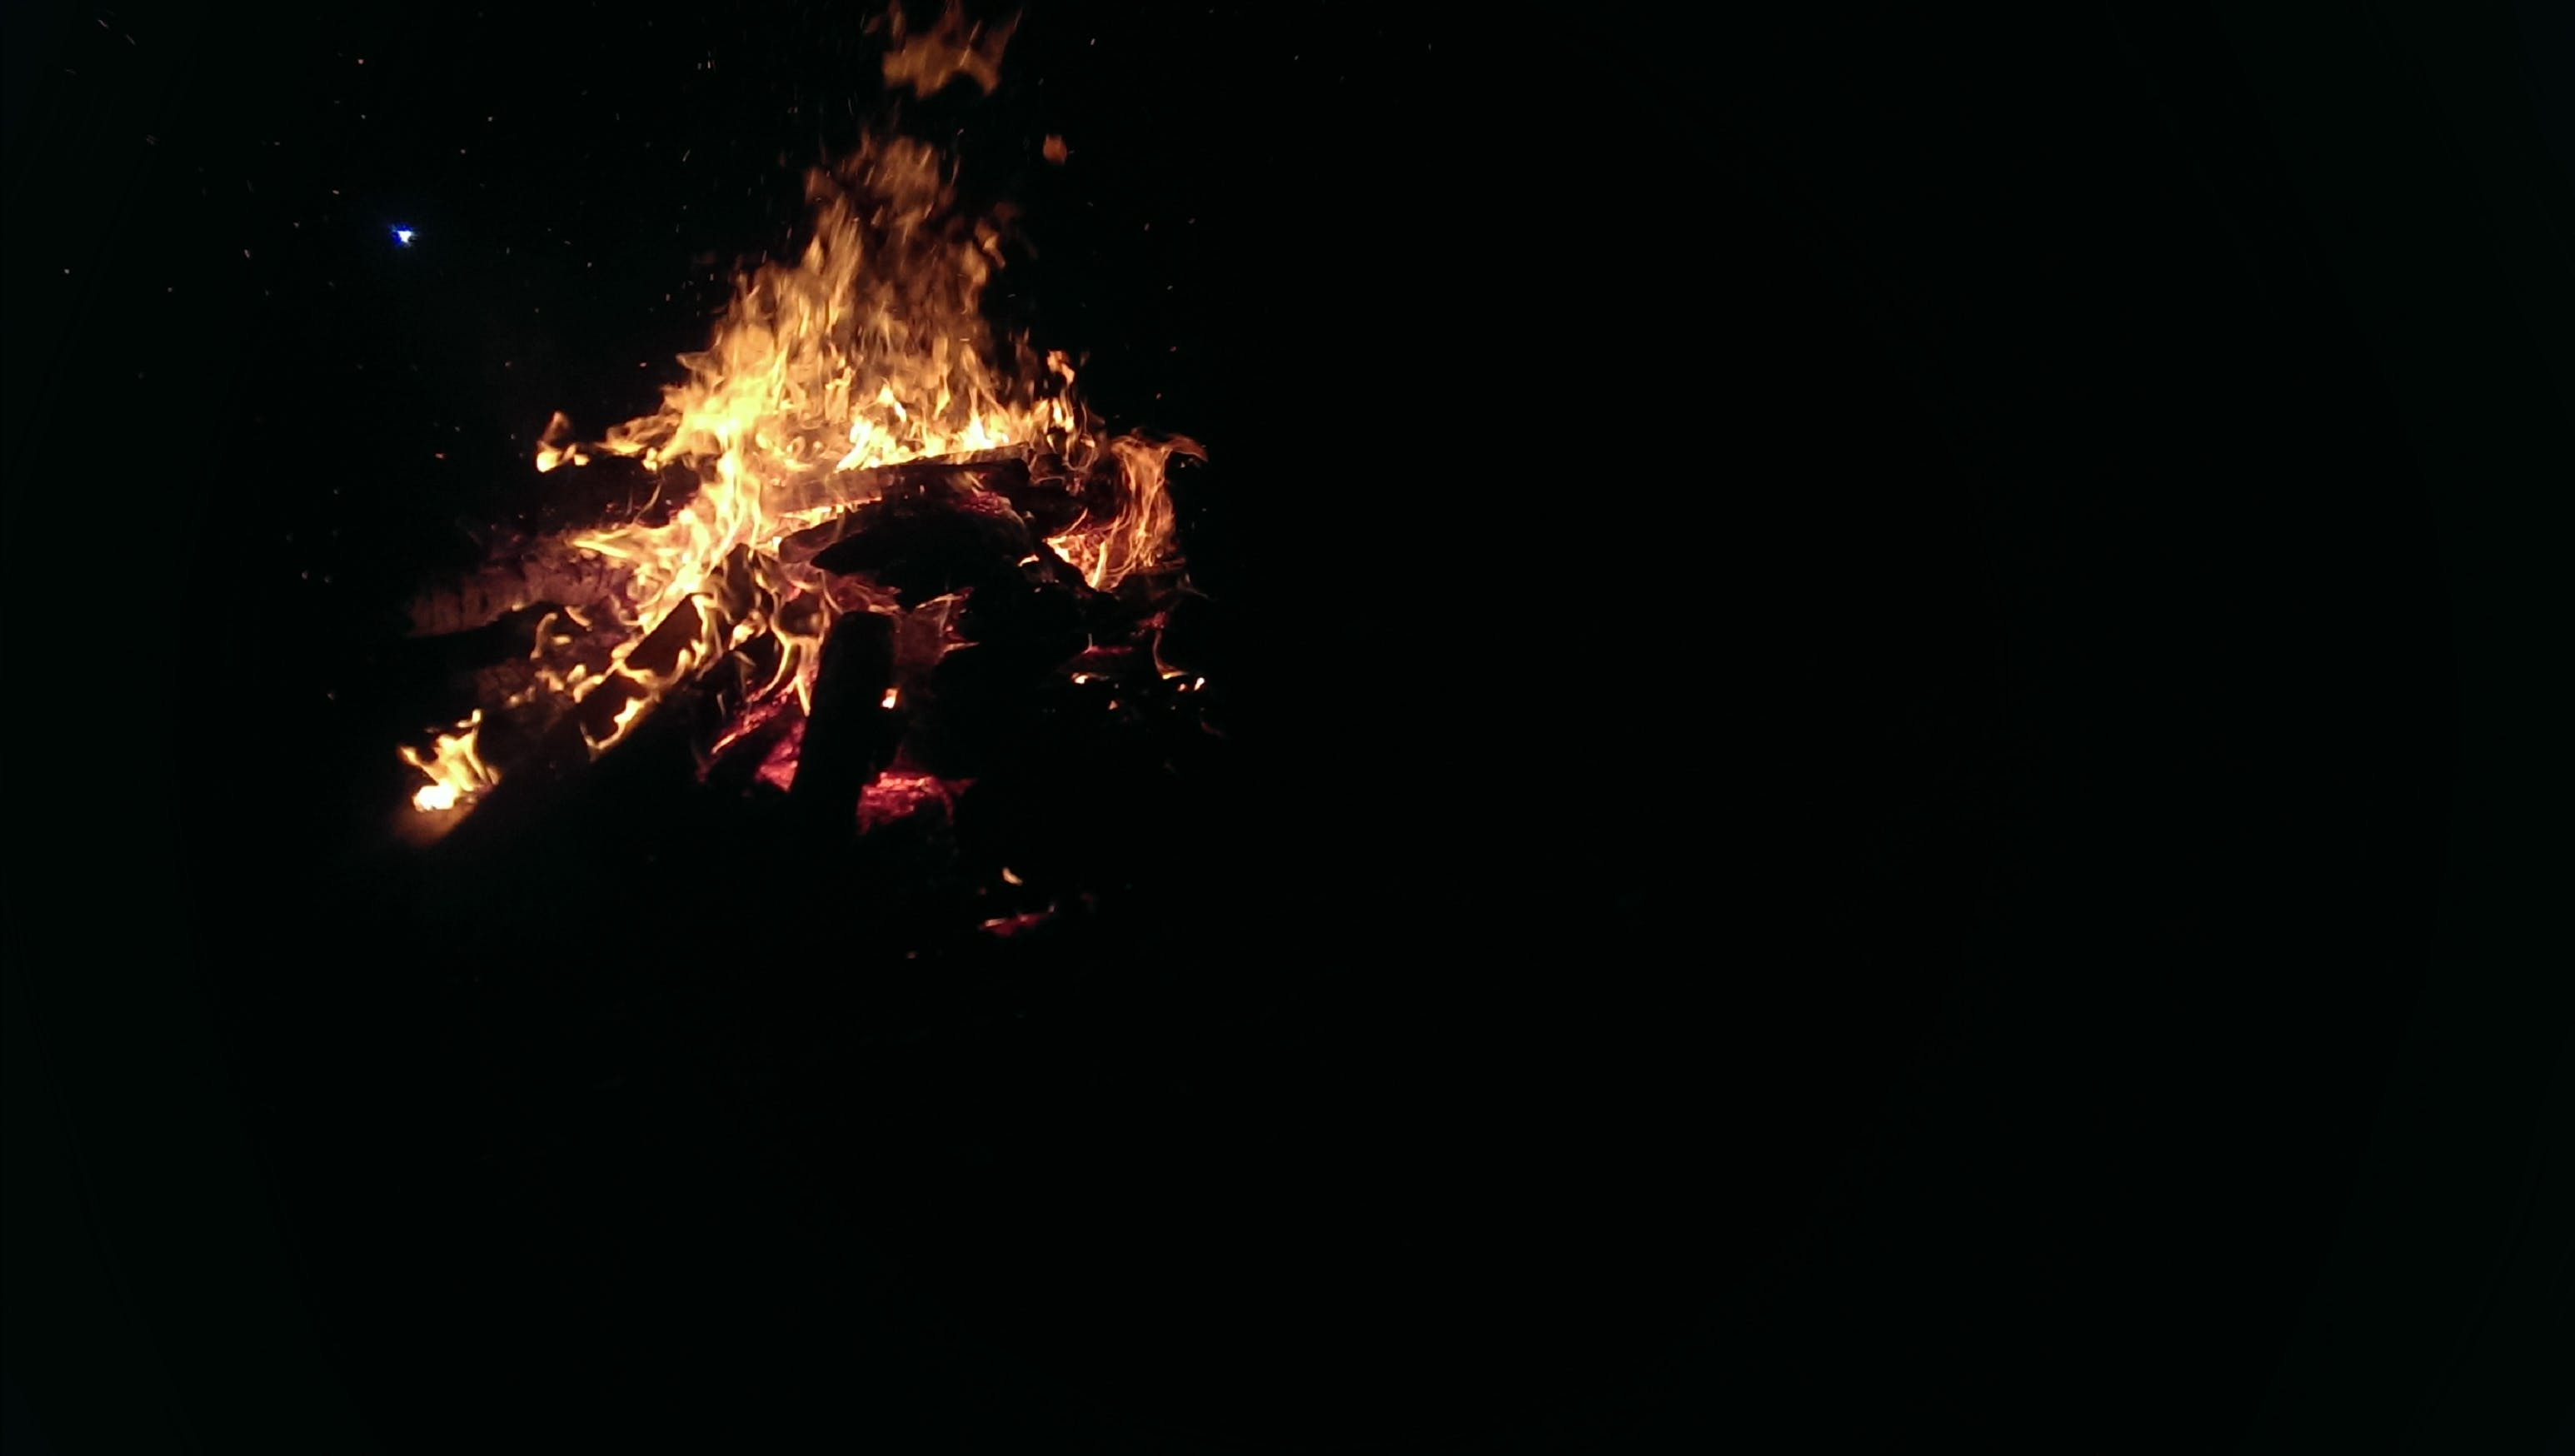 fire, nature, night